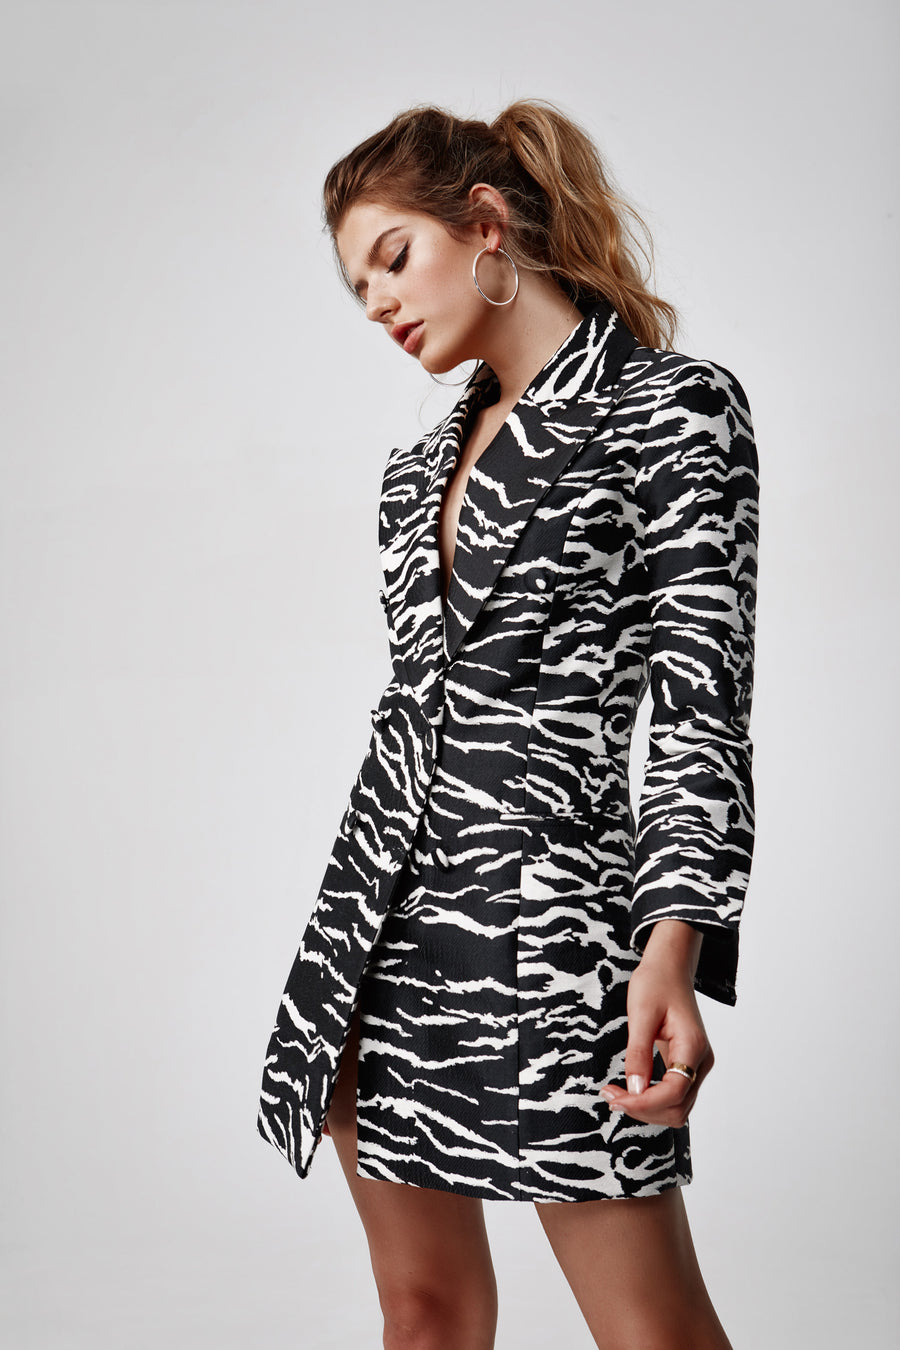 Zena Jacket Dress - Black